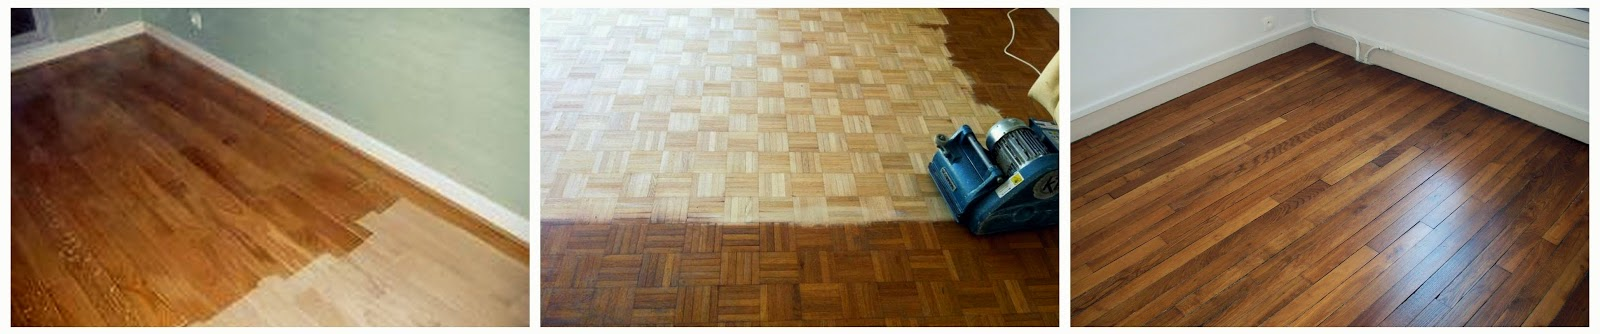 renovation parquet Paris